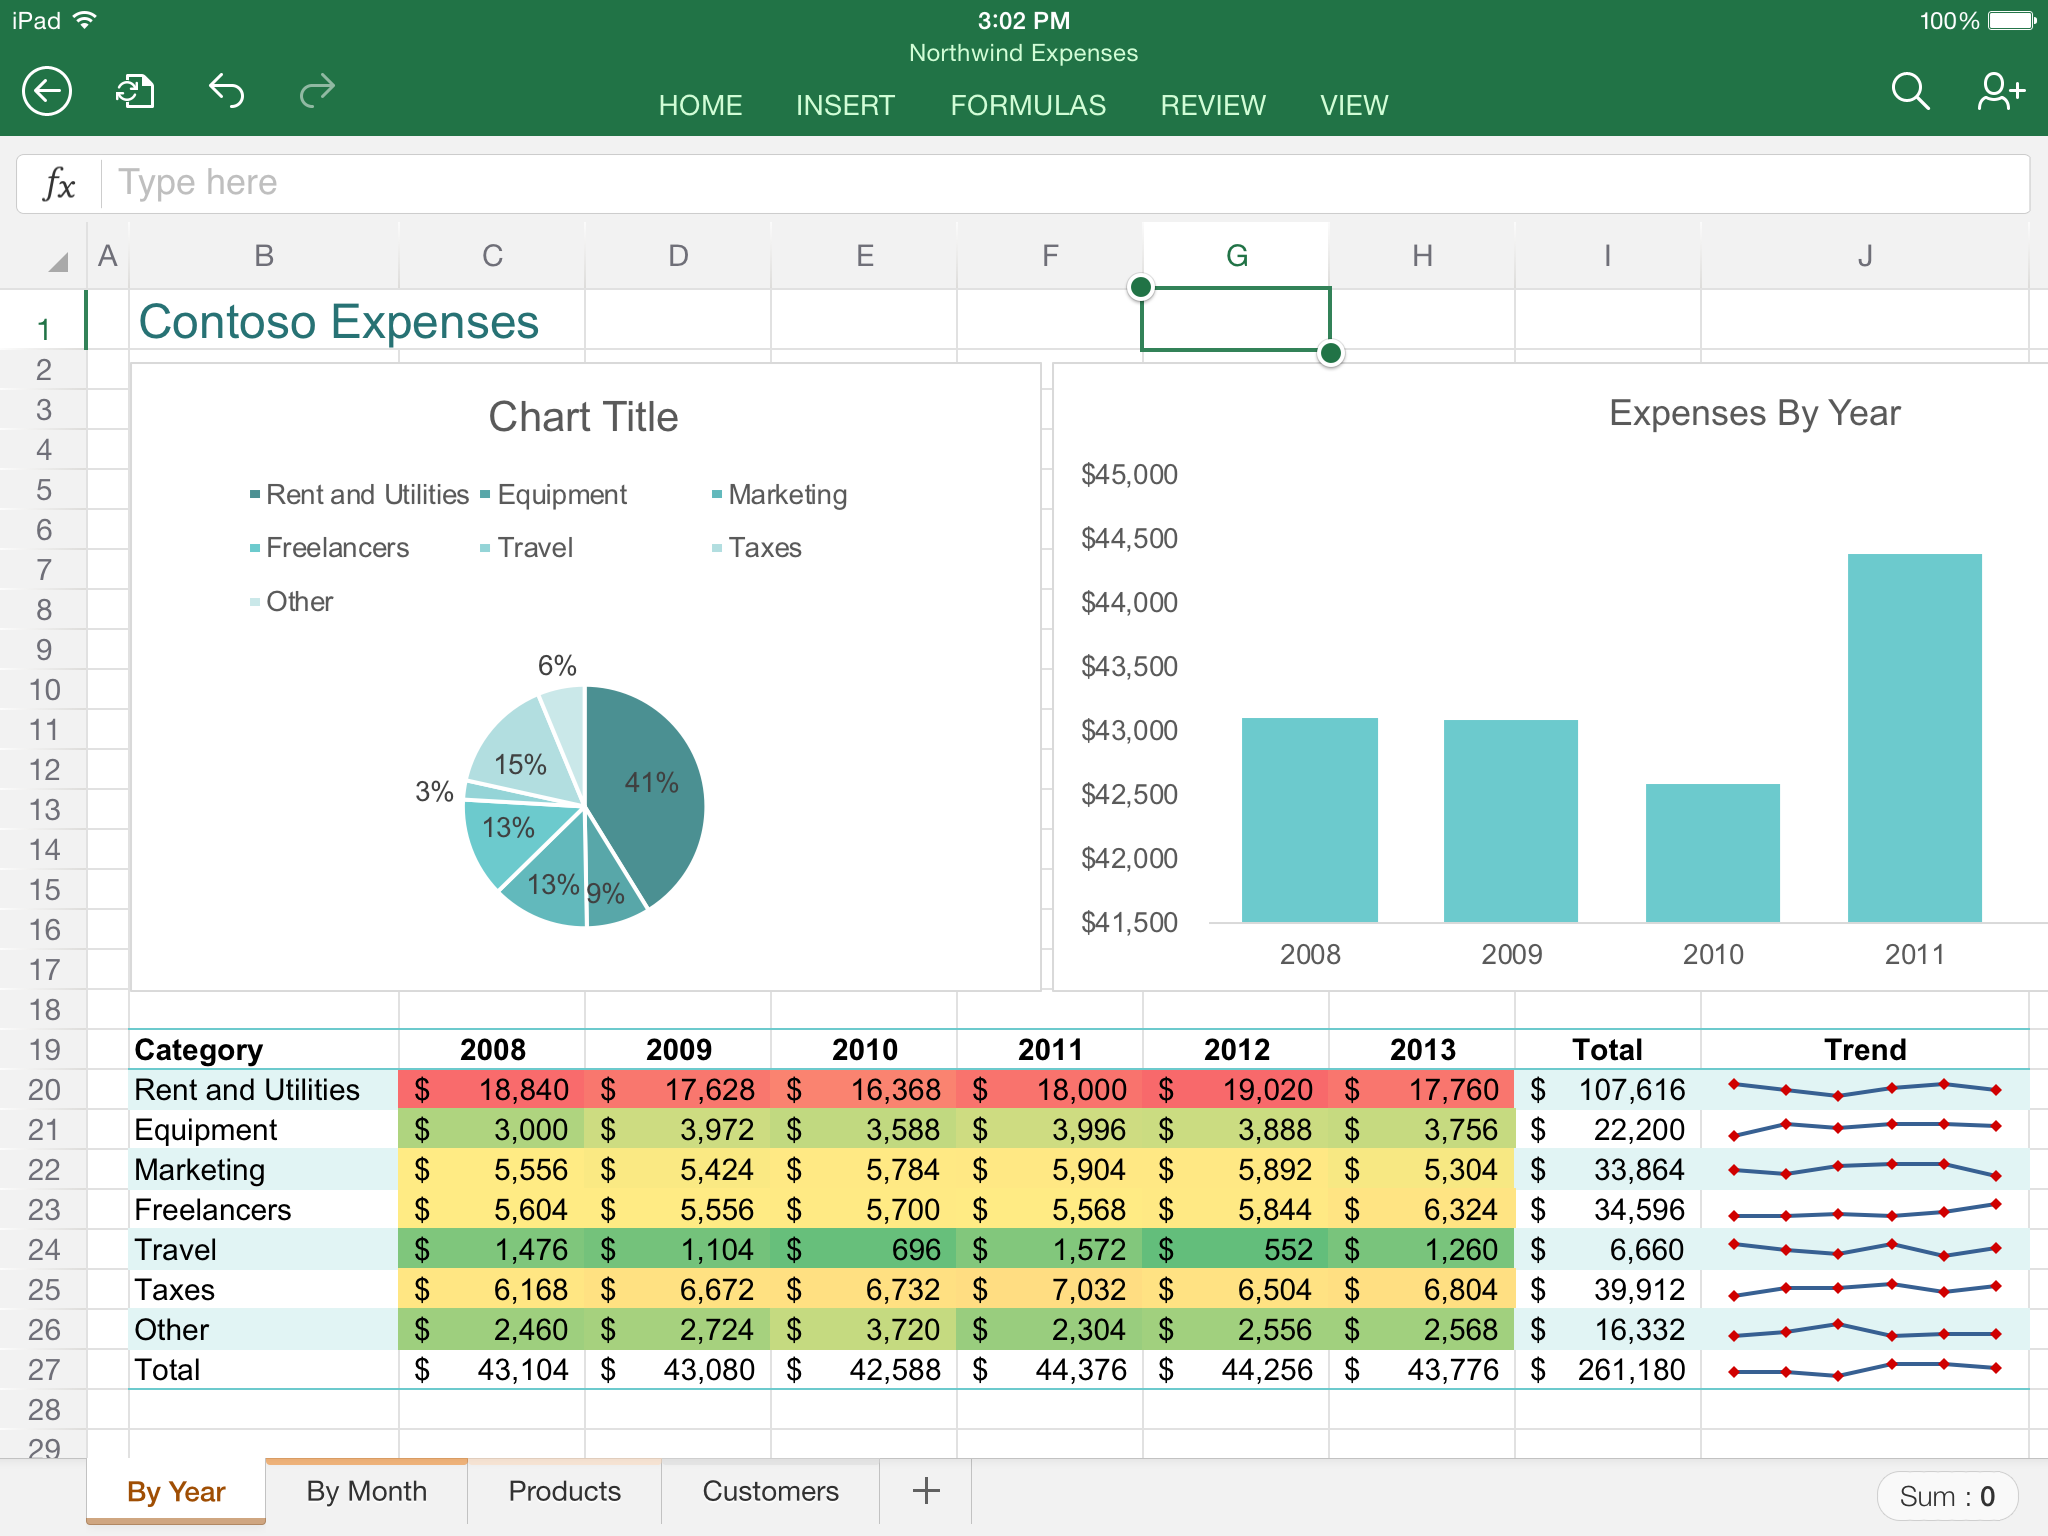 Ediblewildsus  Unique App Highlight Excel  Mobile Digital Now With Remarkable Excel In Action With Delectable Adobe To Excel Converter Also Mysql For Excel Download In Addition Error Function In Excel And How To Use Rand In Excel As Well As Excel Formulas Addition Additionally Excel Home Improvement From Youstonybrookedu With Ediblewildsus  Remarkable App Highlight Excel  Mobile Digital Now With Delectable Excel In Action And Unique Adobe To Excel Converter Also Mysql For Excel Download In Addition Error Function In Excel From Youstonybrookedu